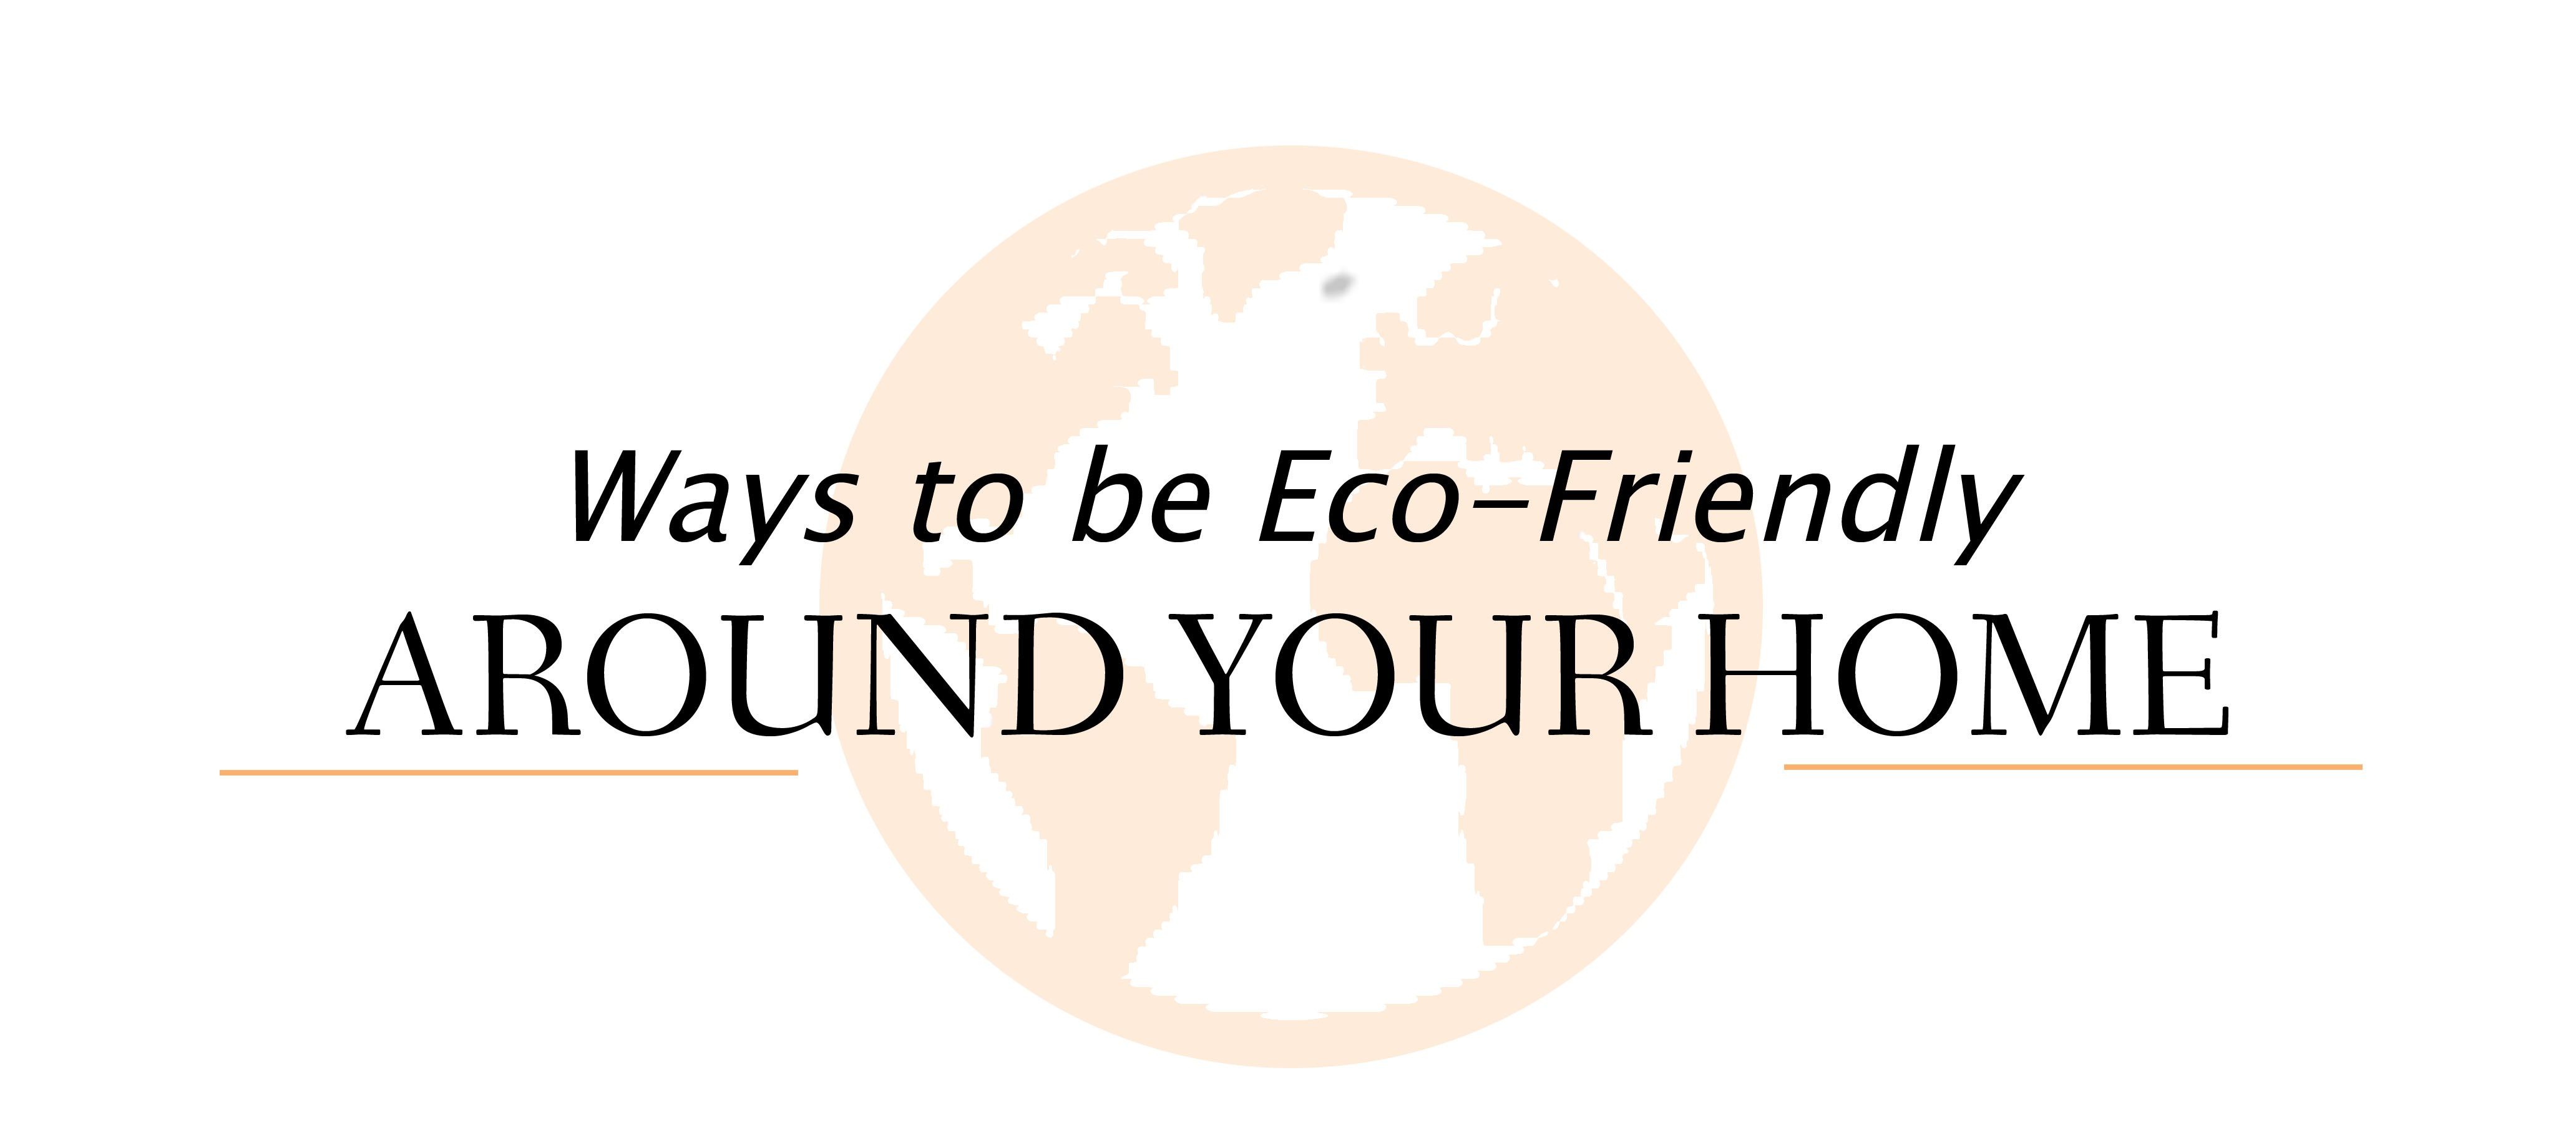 10 ways to be eco-friendly around your home